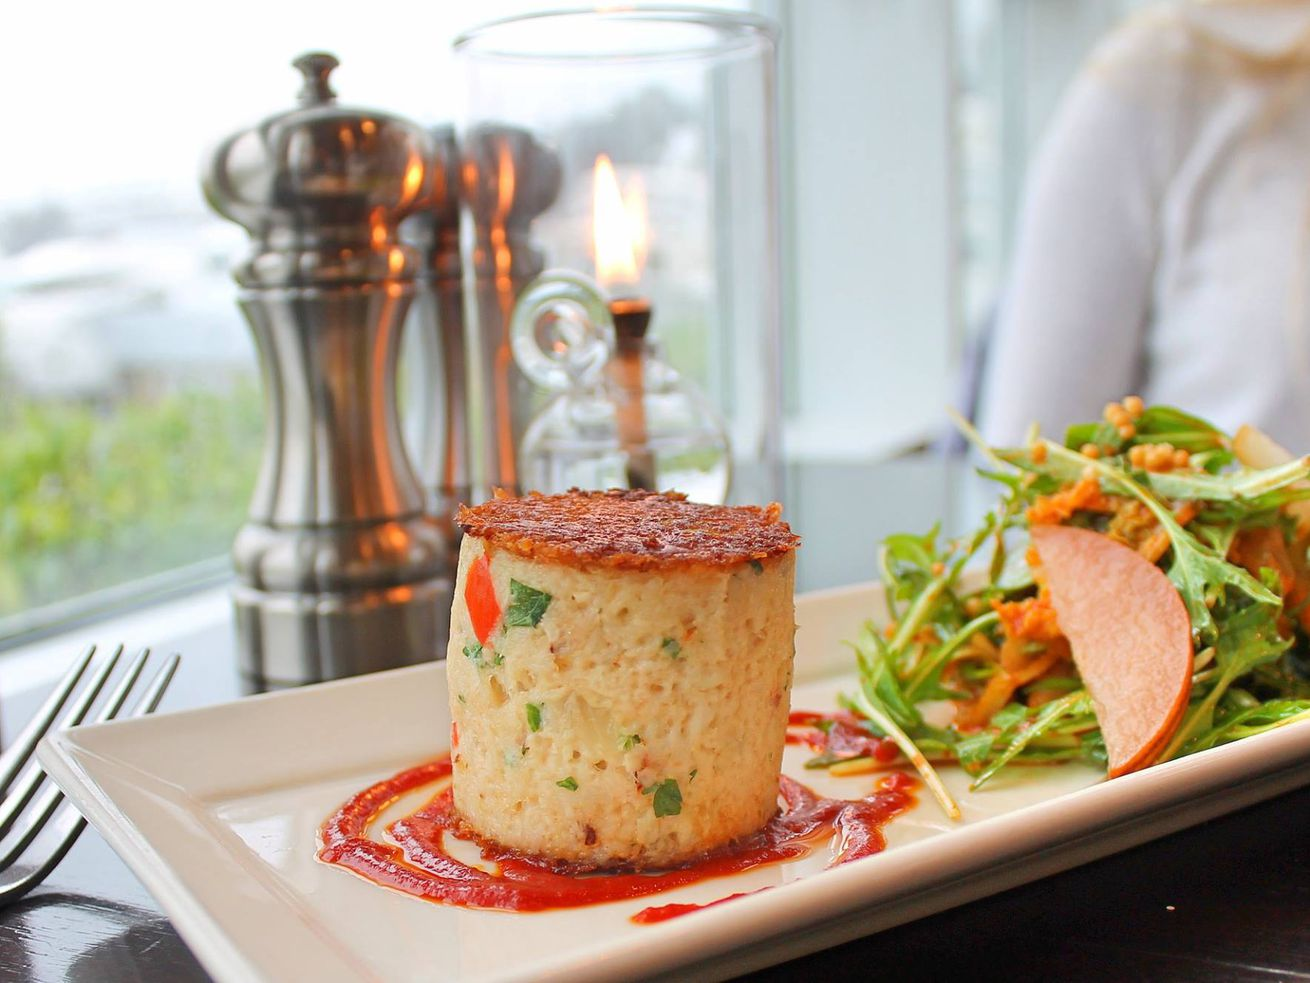 Chandler's Crabhouse is known, obviously, for seafood dishes like it's massive crab cake.